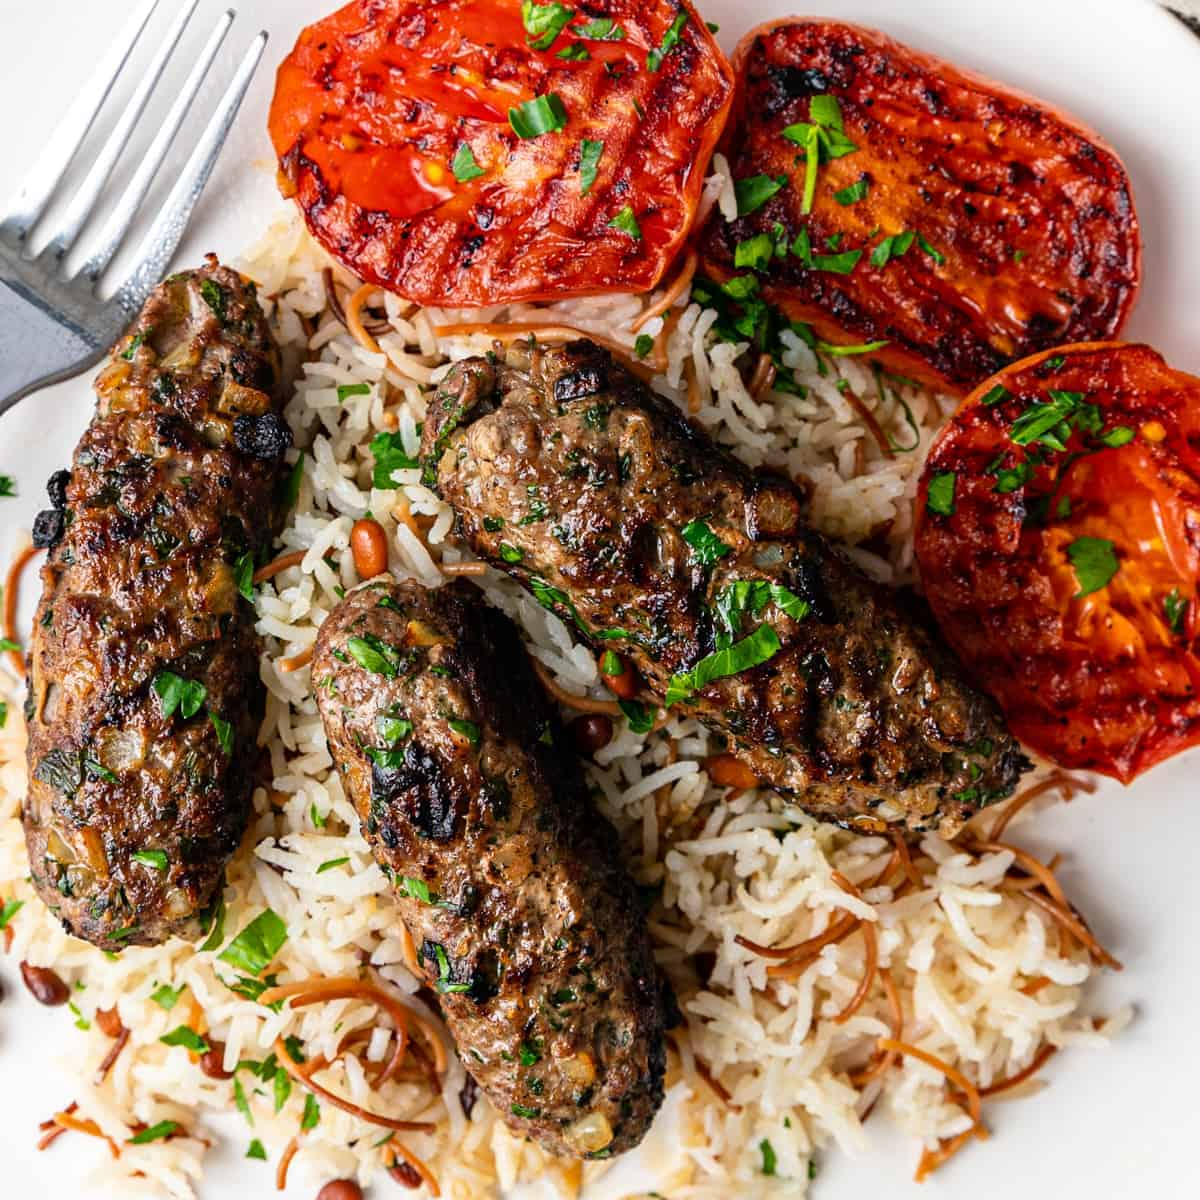 overhead image: kafta grilled ion bed of rice with side of grilled tomato slices